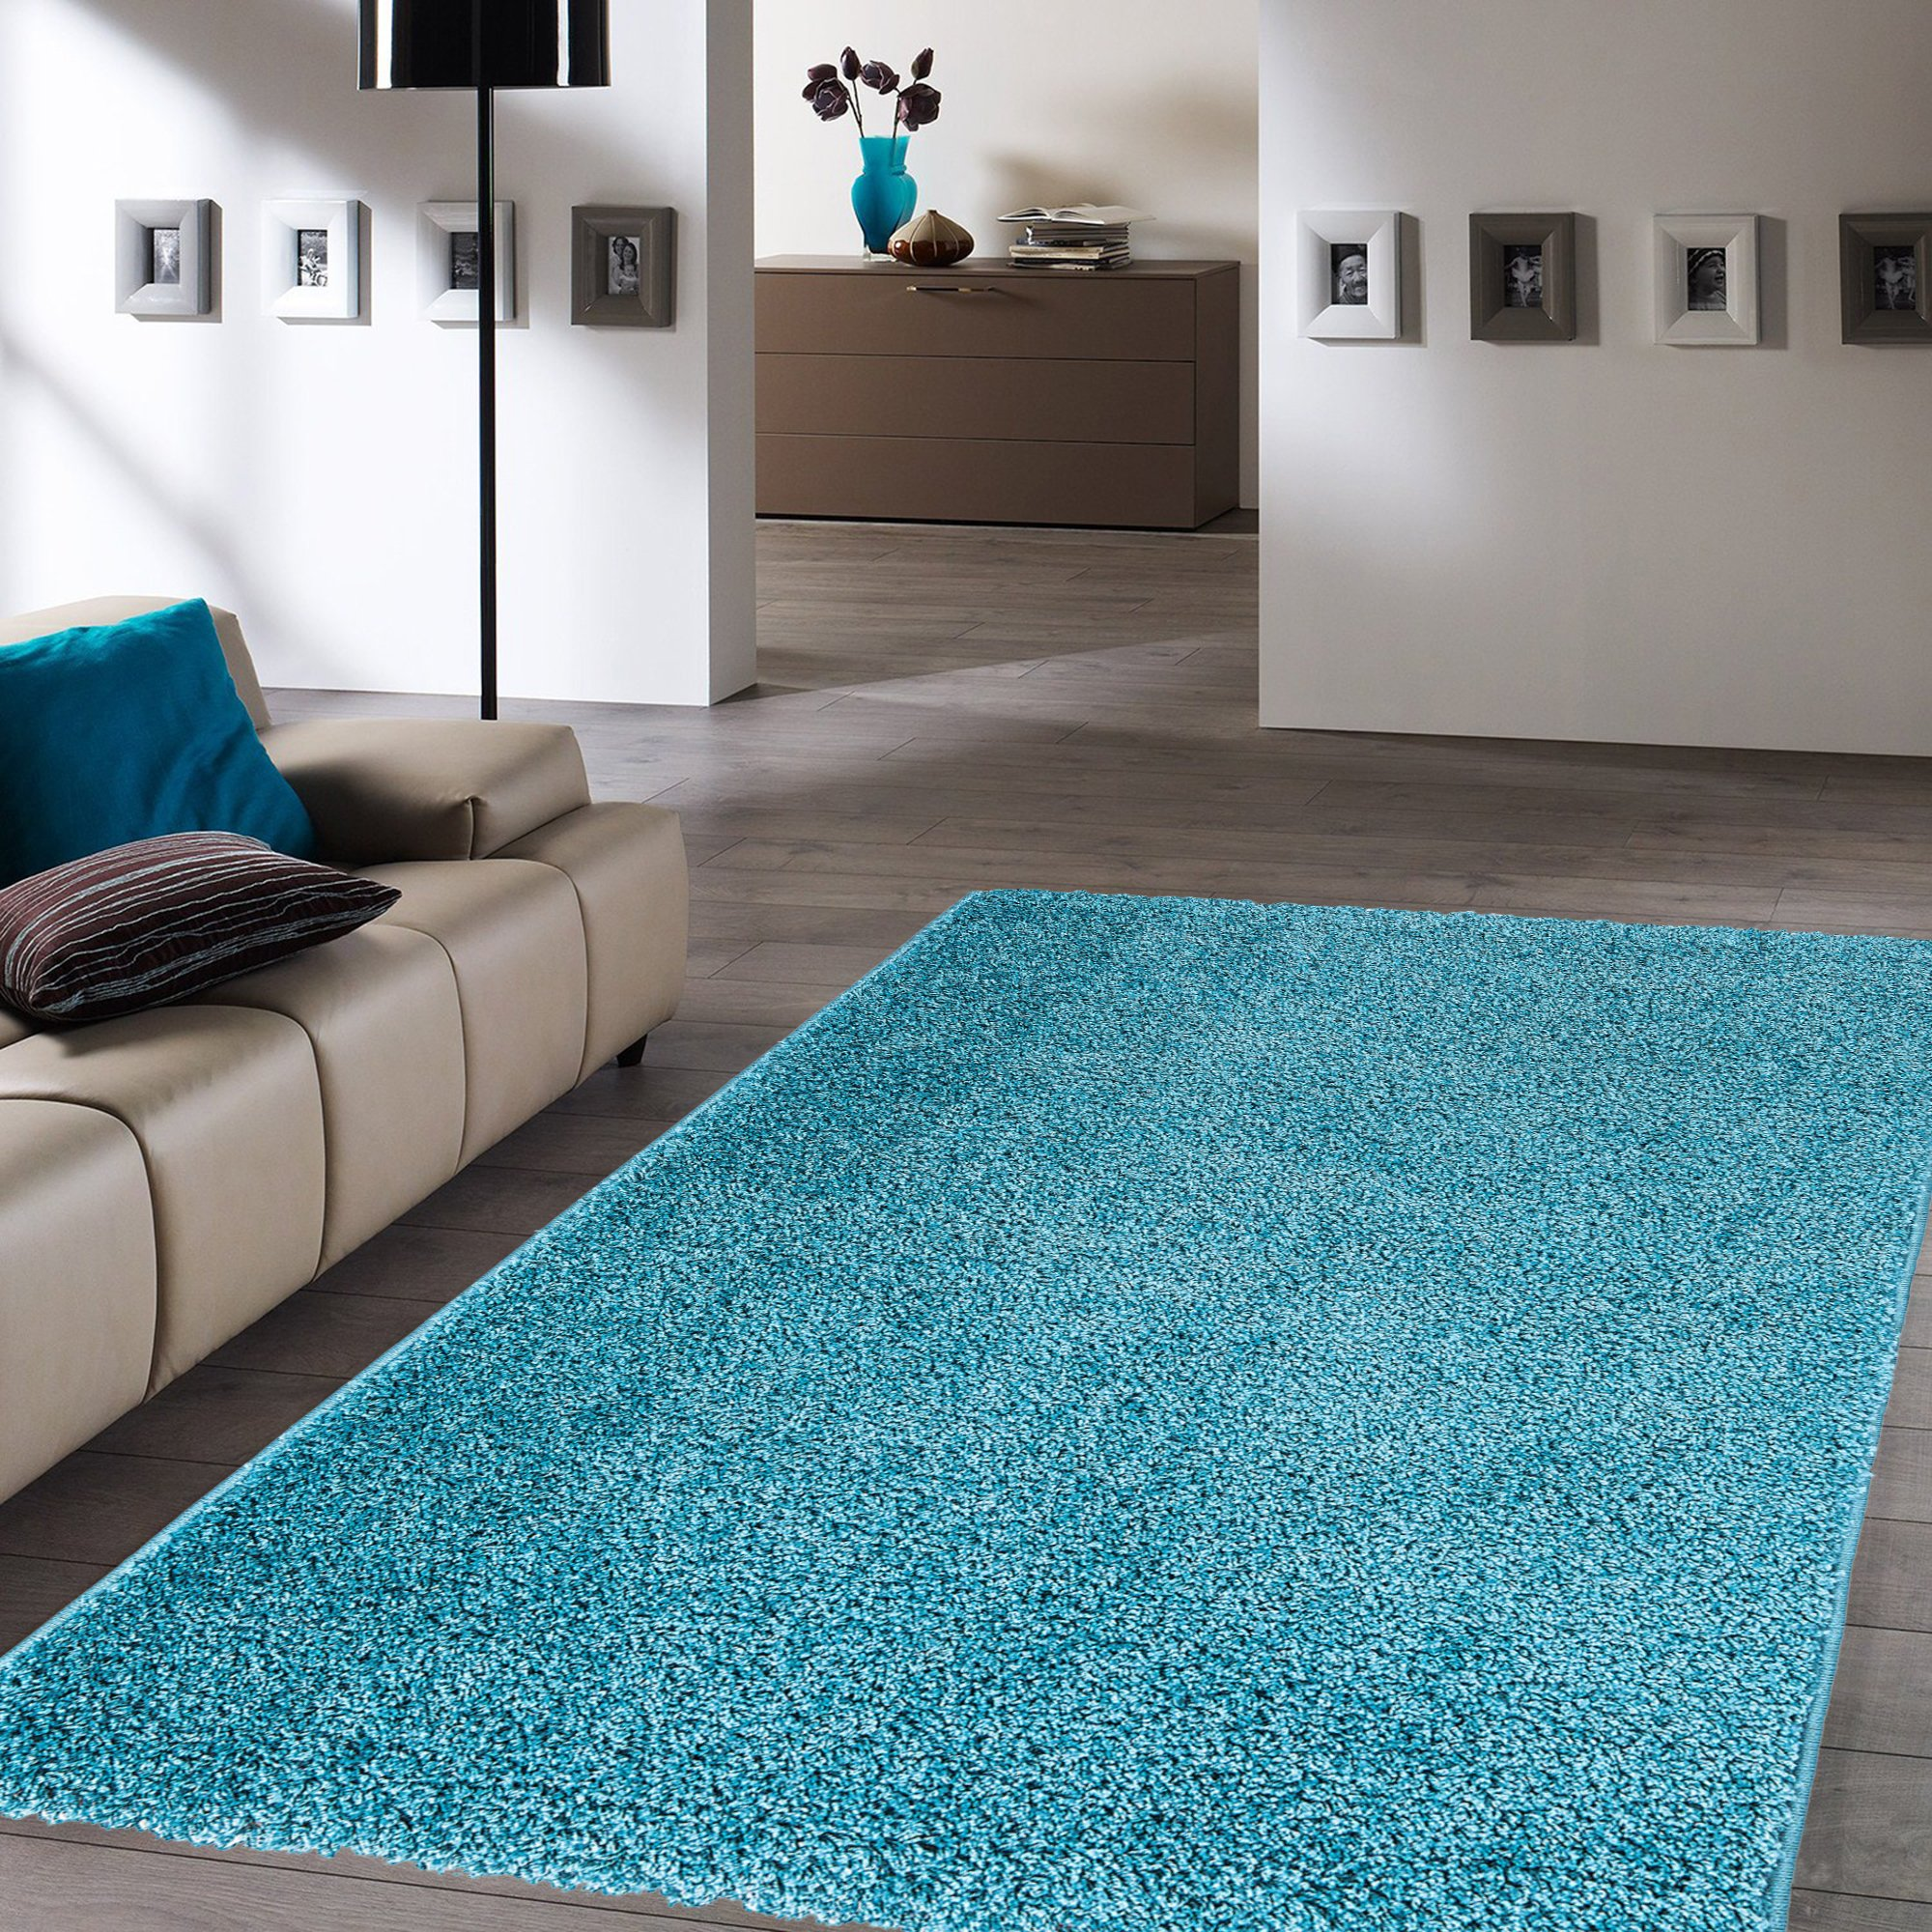 Ottomanson Soft Cozy Solid Color Shag Rug Contemporary Living and Bedroom Kids Soft Shaggy Area Rug(3'3'' X 4'7'', Blue)